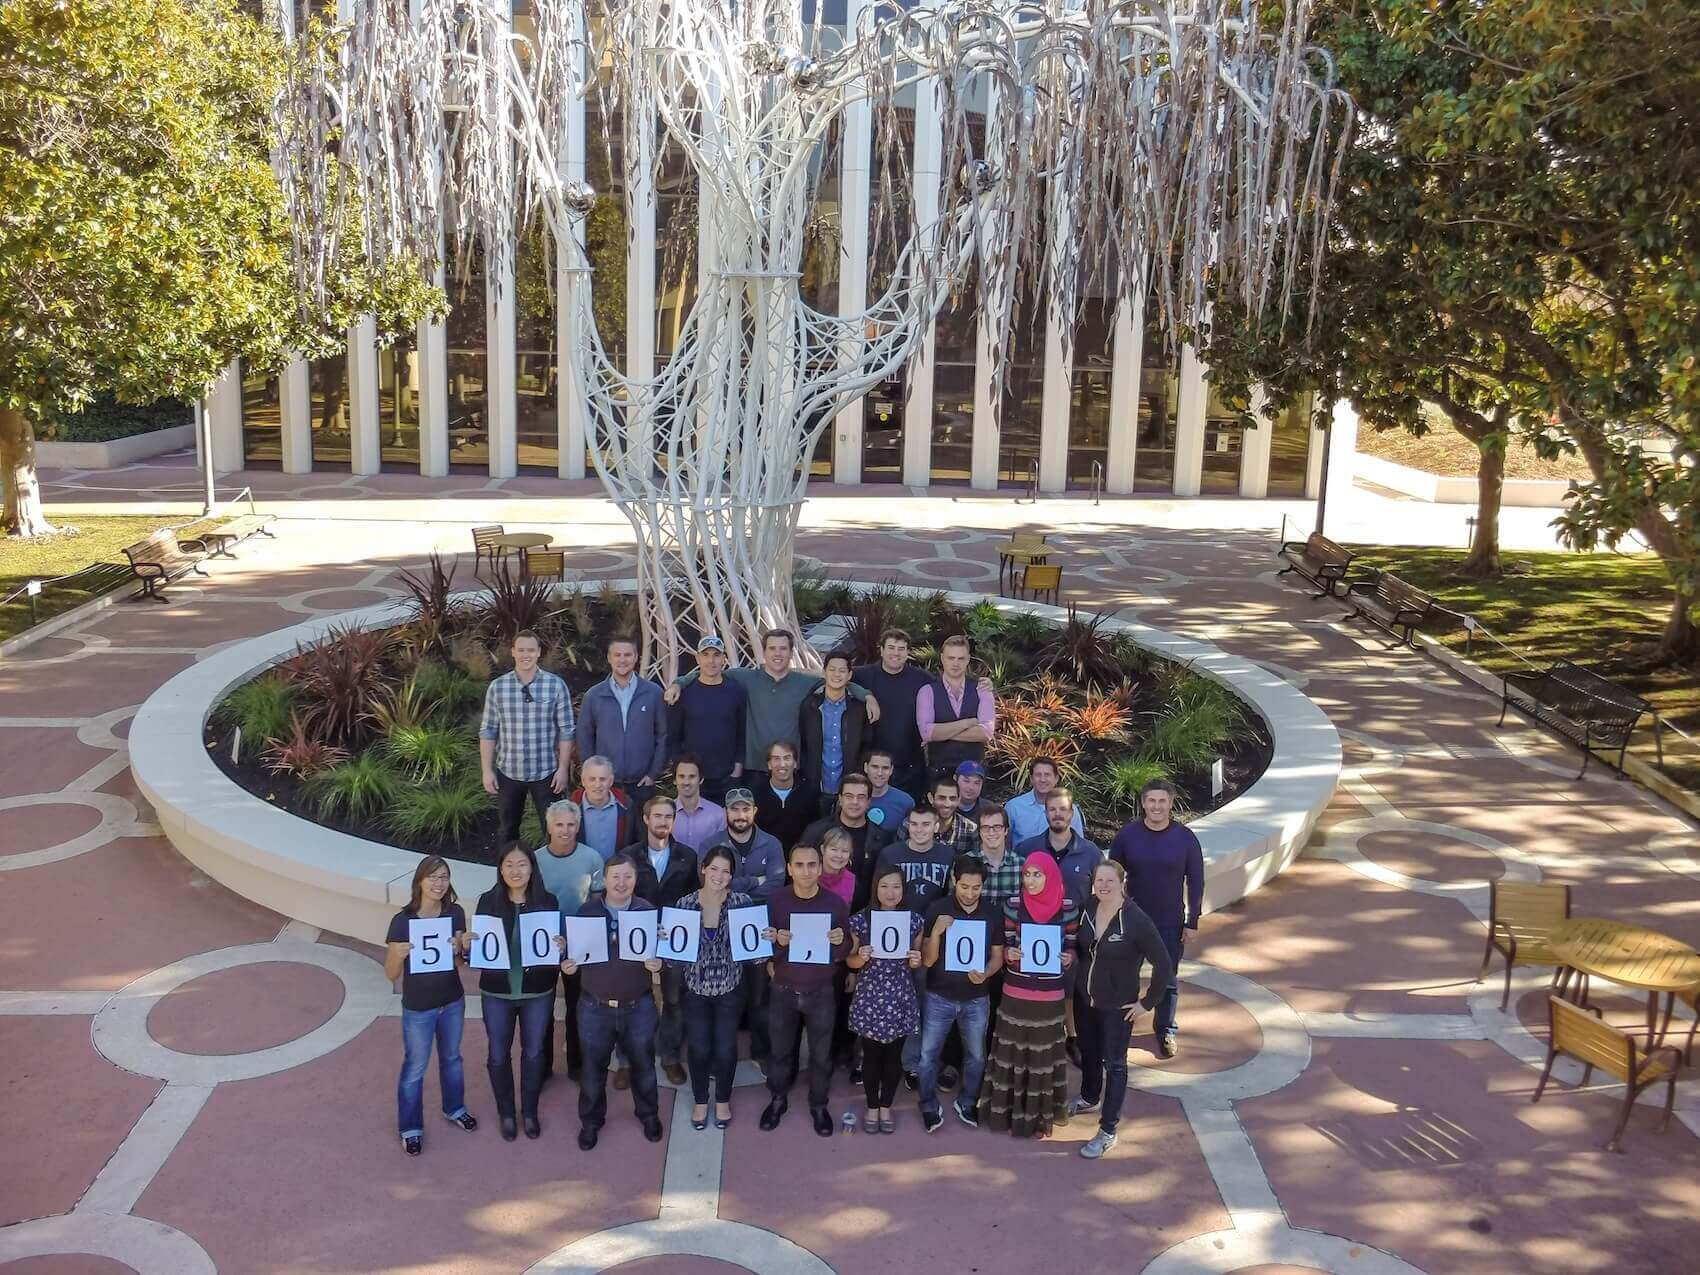 Aerial Wealthfront Team Photo, November 22, 2013, Palo Alto, California